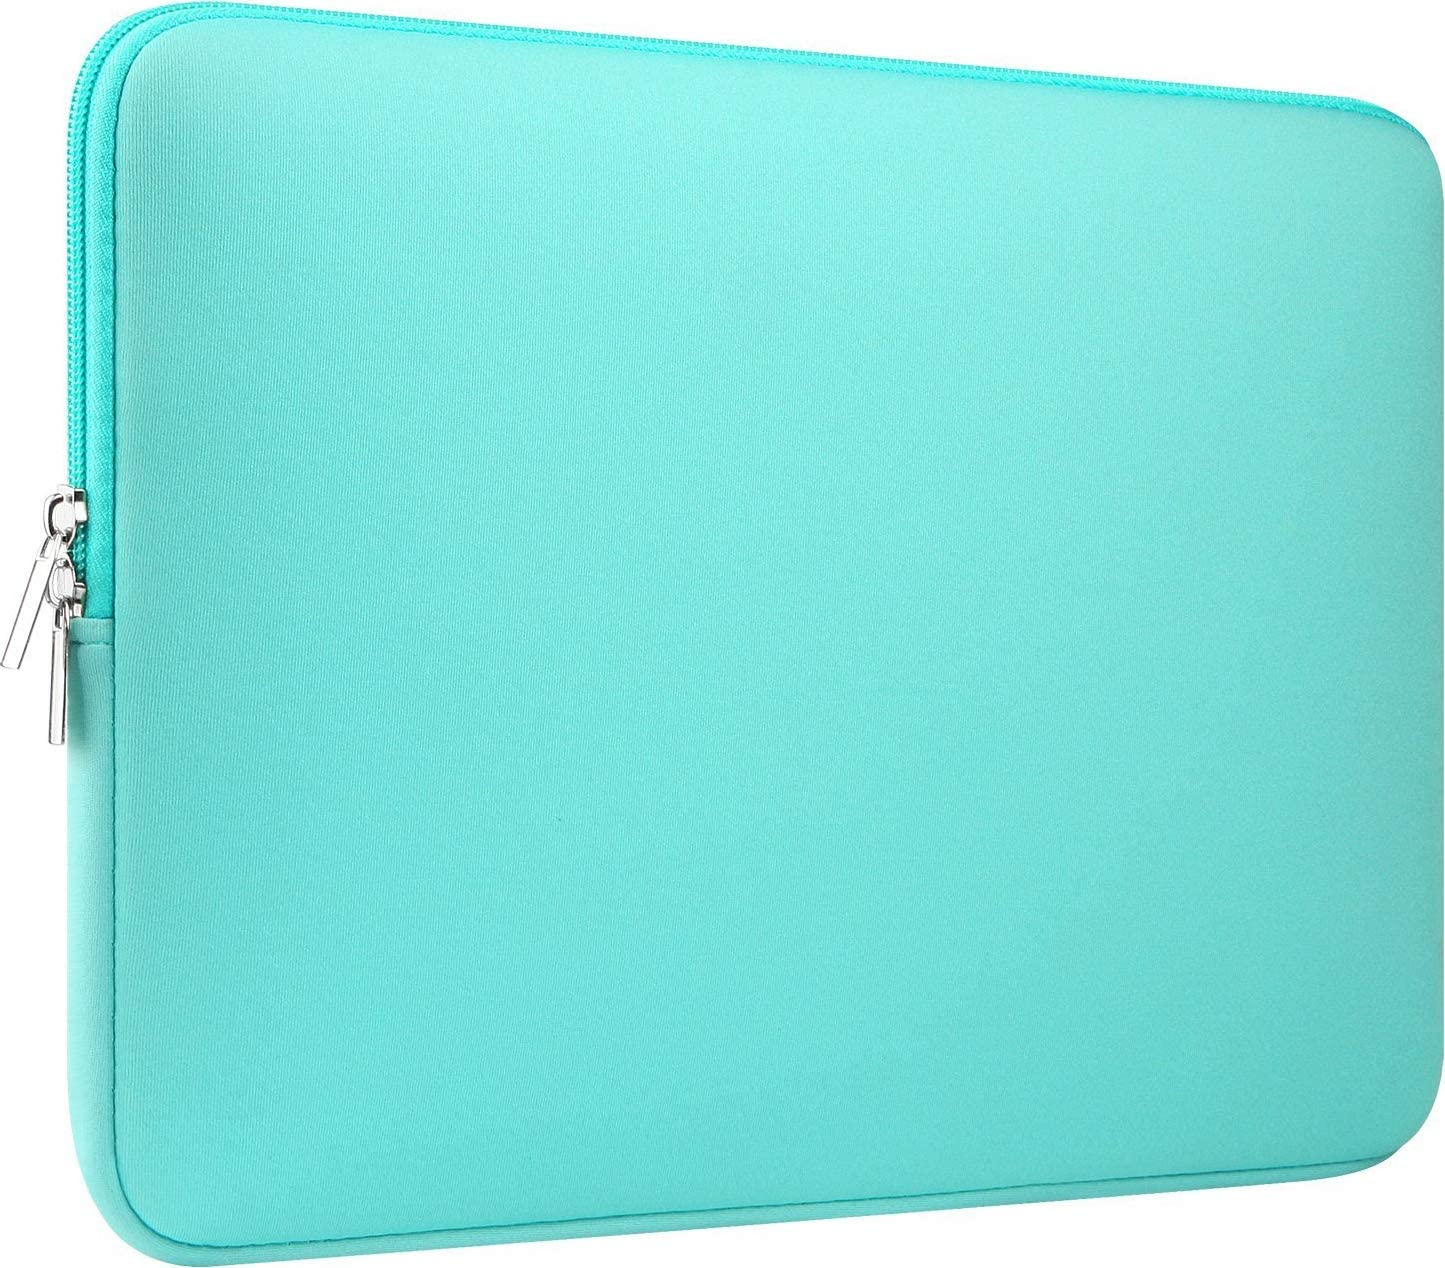 """CCPK 11 Inch Laptop Sleeve Computer Case Bag Cover Compatible for Apple 11.6"""" MacBook Air 12 Inch New MacBook 12.3-inch Microsoft Surface Pro 6 5 4 3 13.3 in Dell Xps 13 9360 9370 Skin Neoprene Mint"""